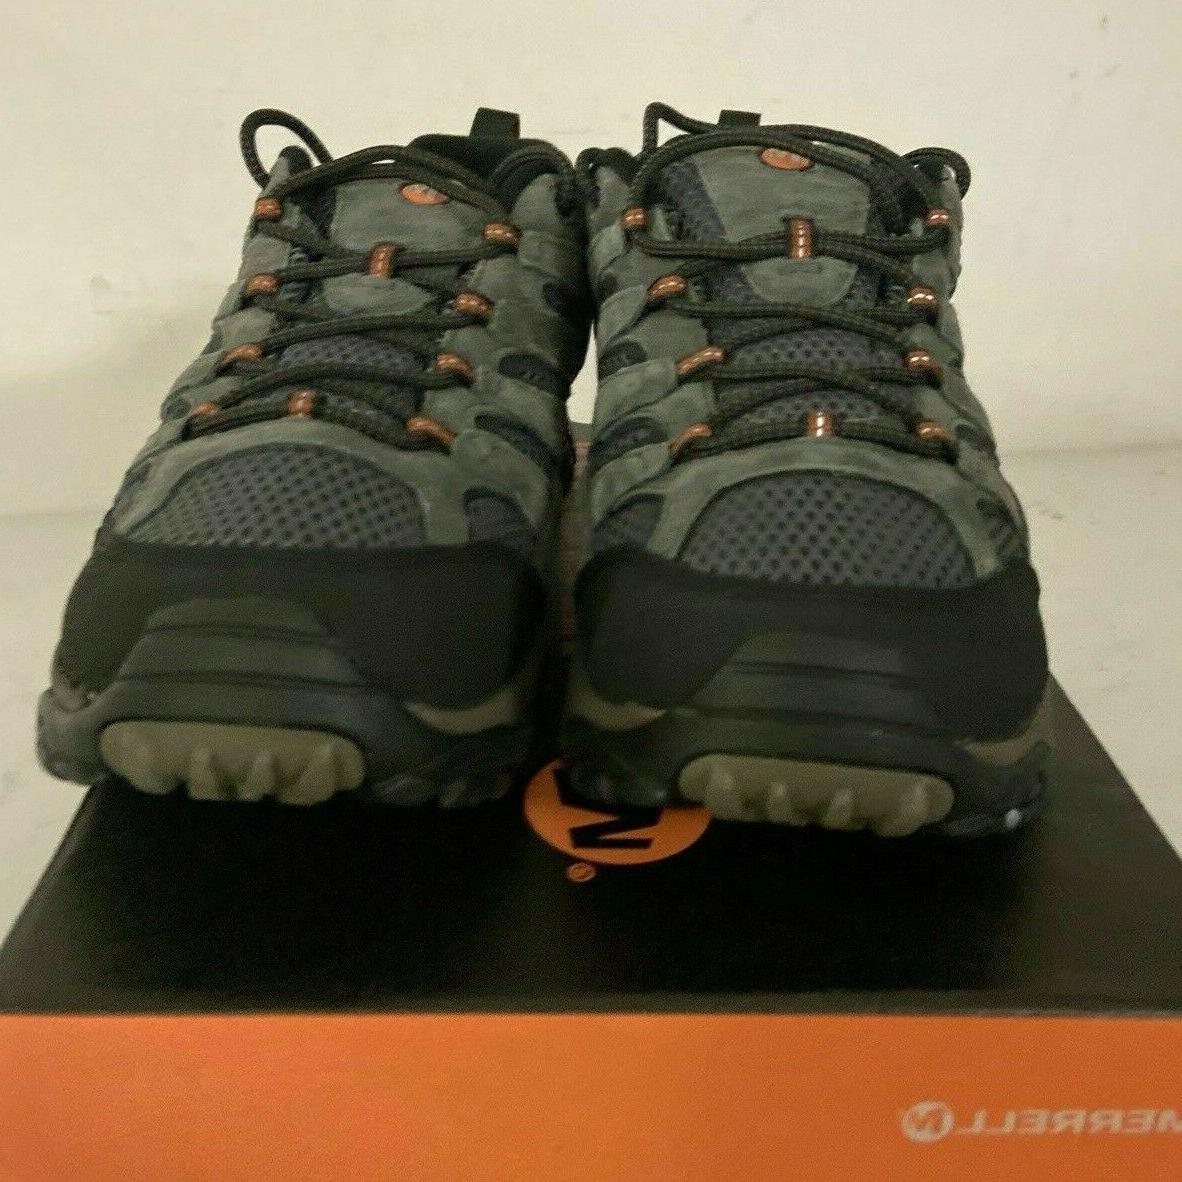 New Merrell Moab 2 Hiking Shoes Sz WIDE